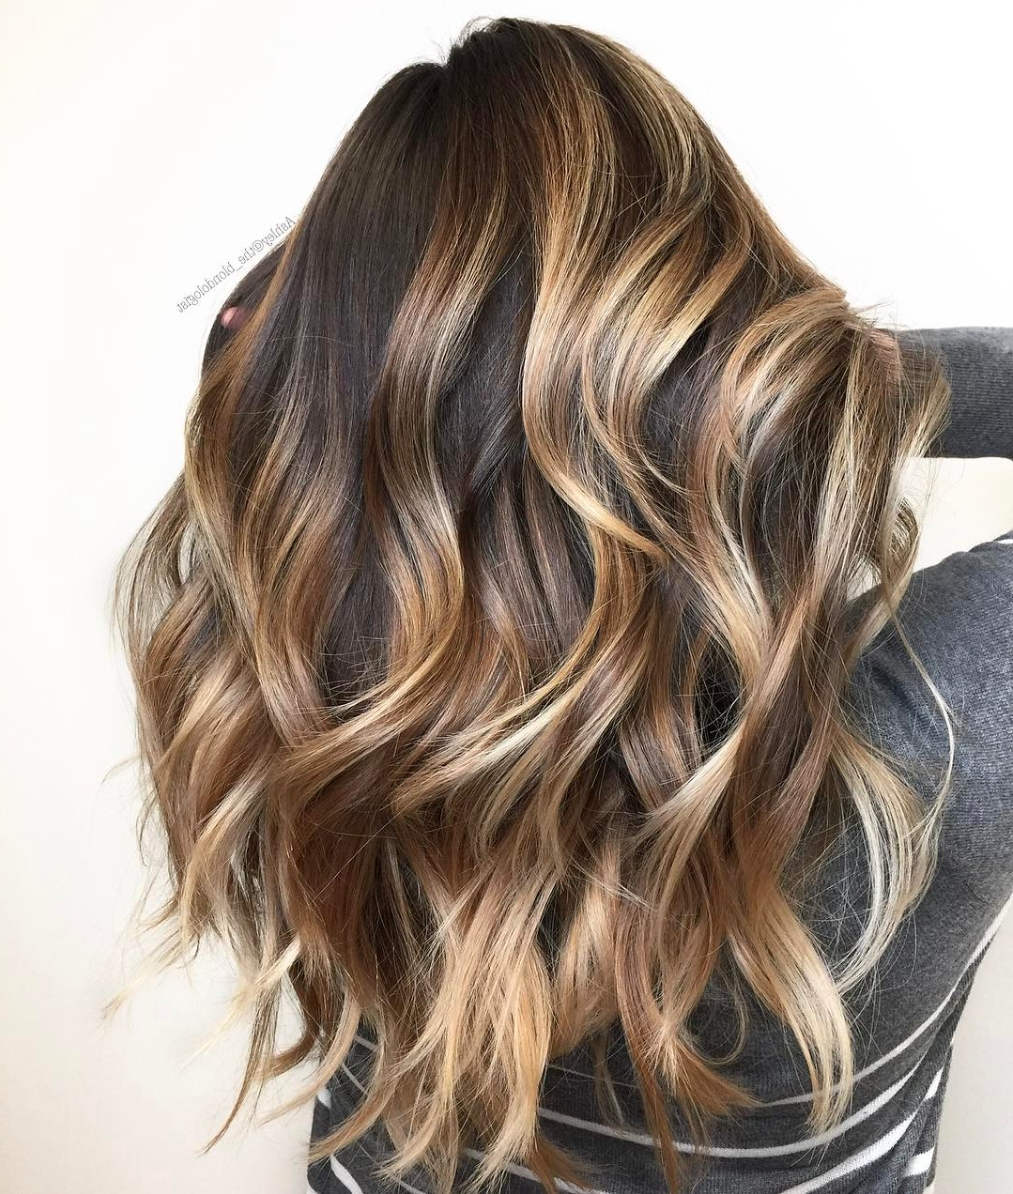 Best And Newest Contrasting Highlights Blonde Hairstyles Inside Formulas! 6 Sexy Summer Balayage Formulas – Behindthechair (View 6 of 20)